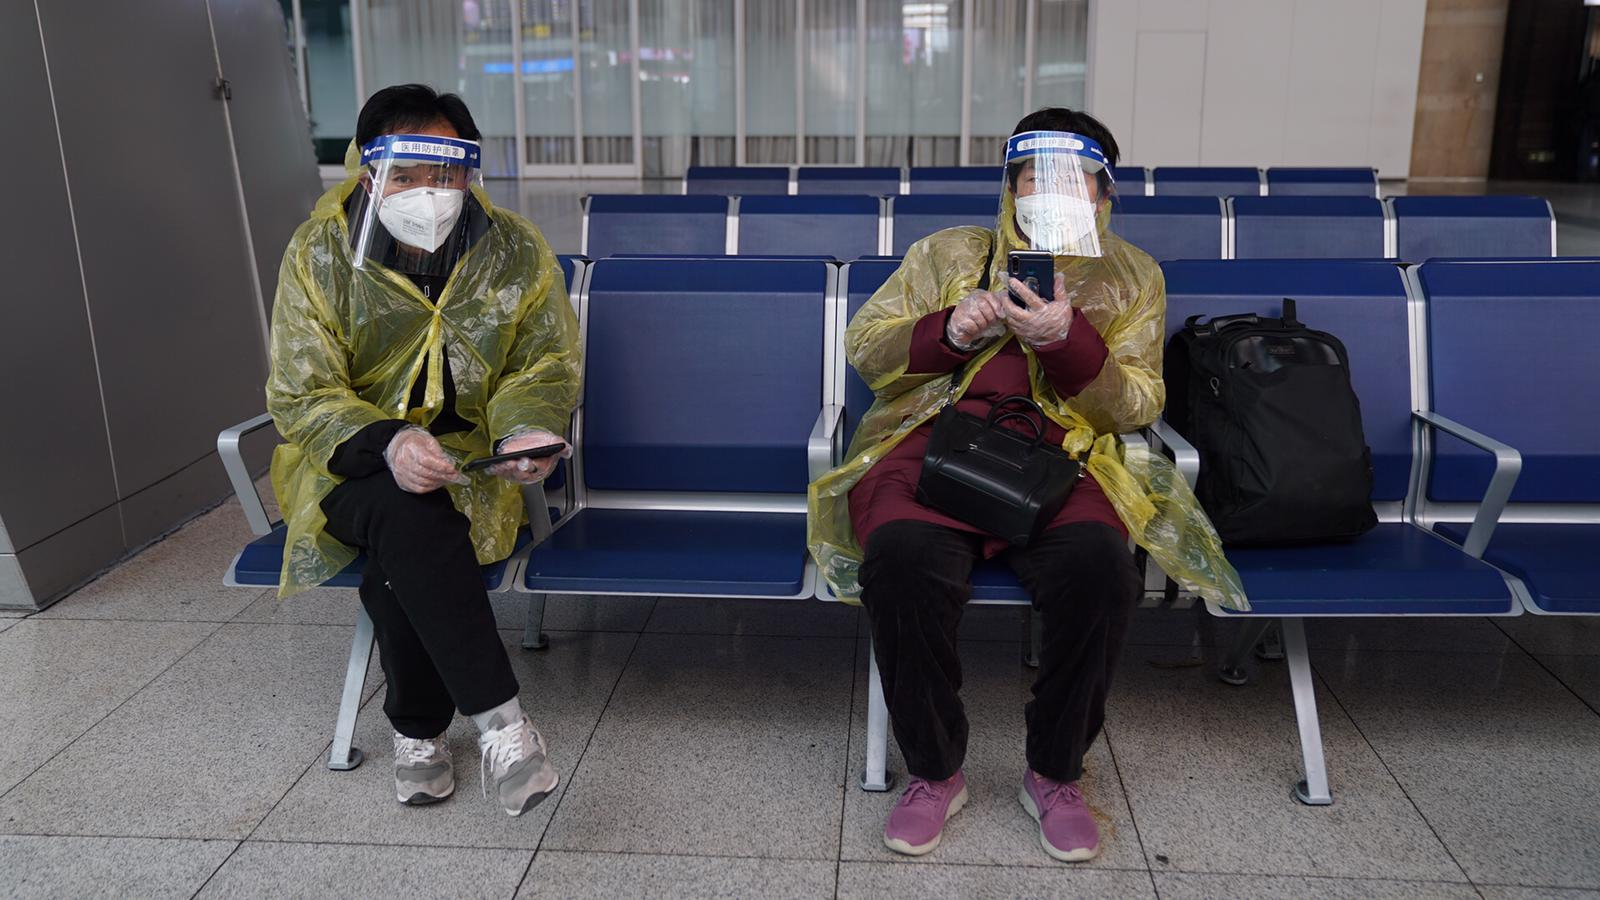 There isn't a single person in sight without a protective face mask.